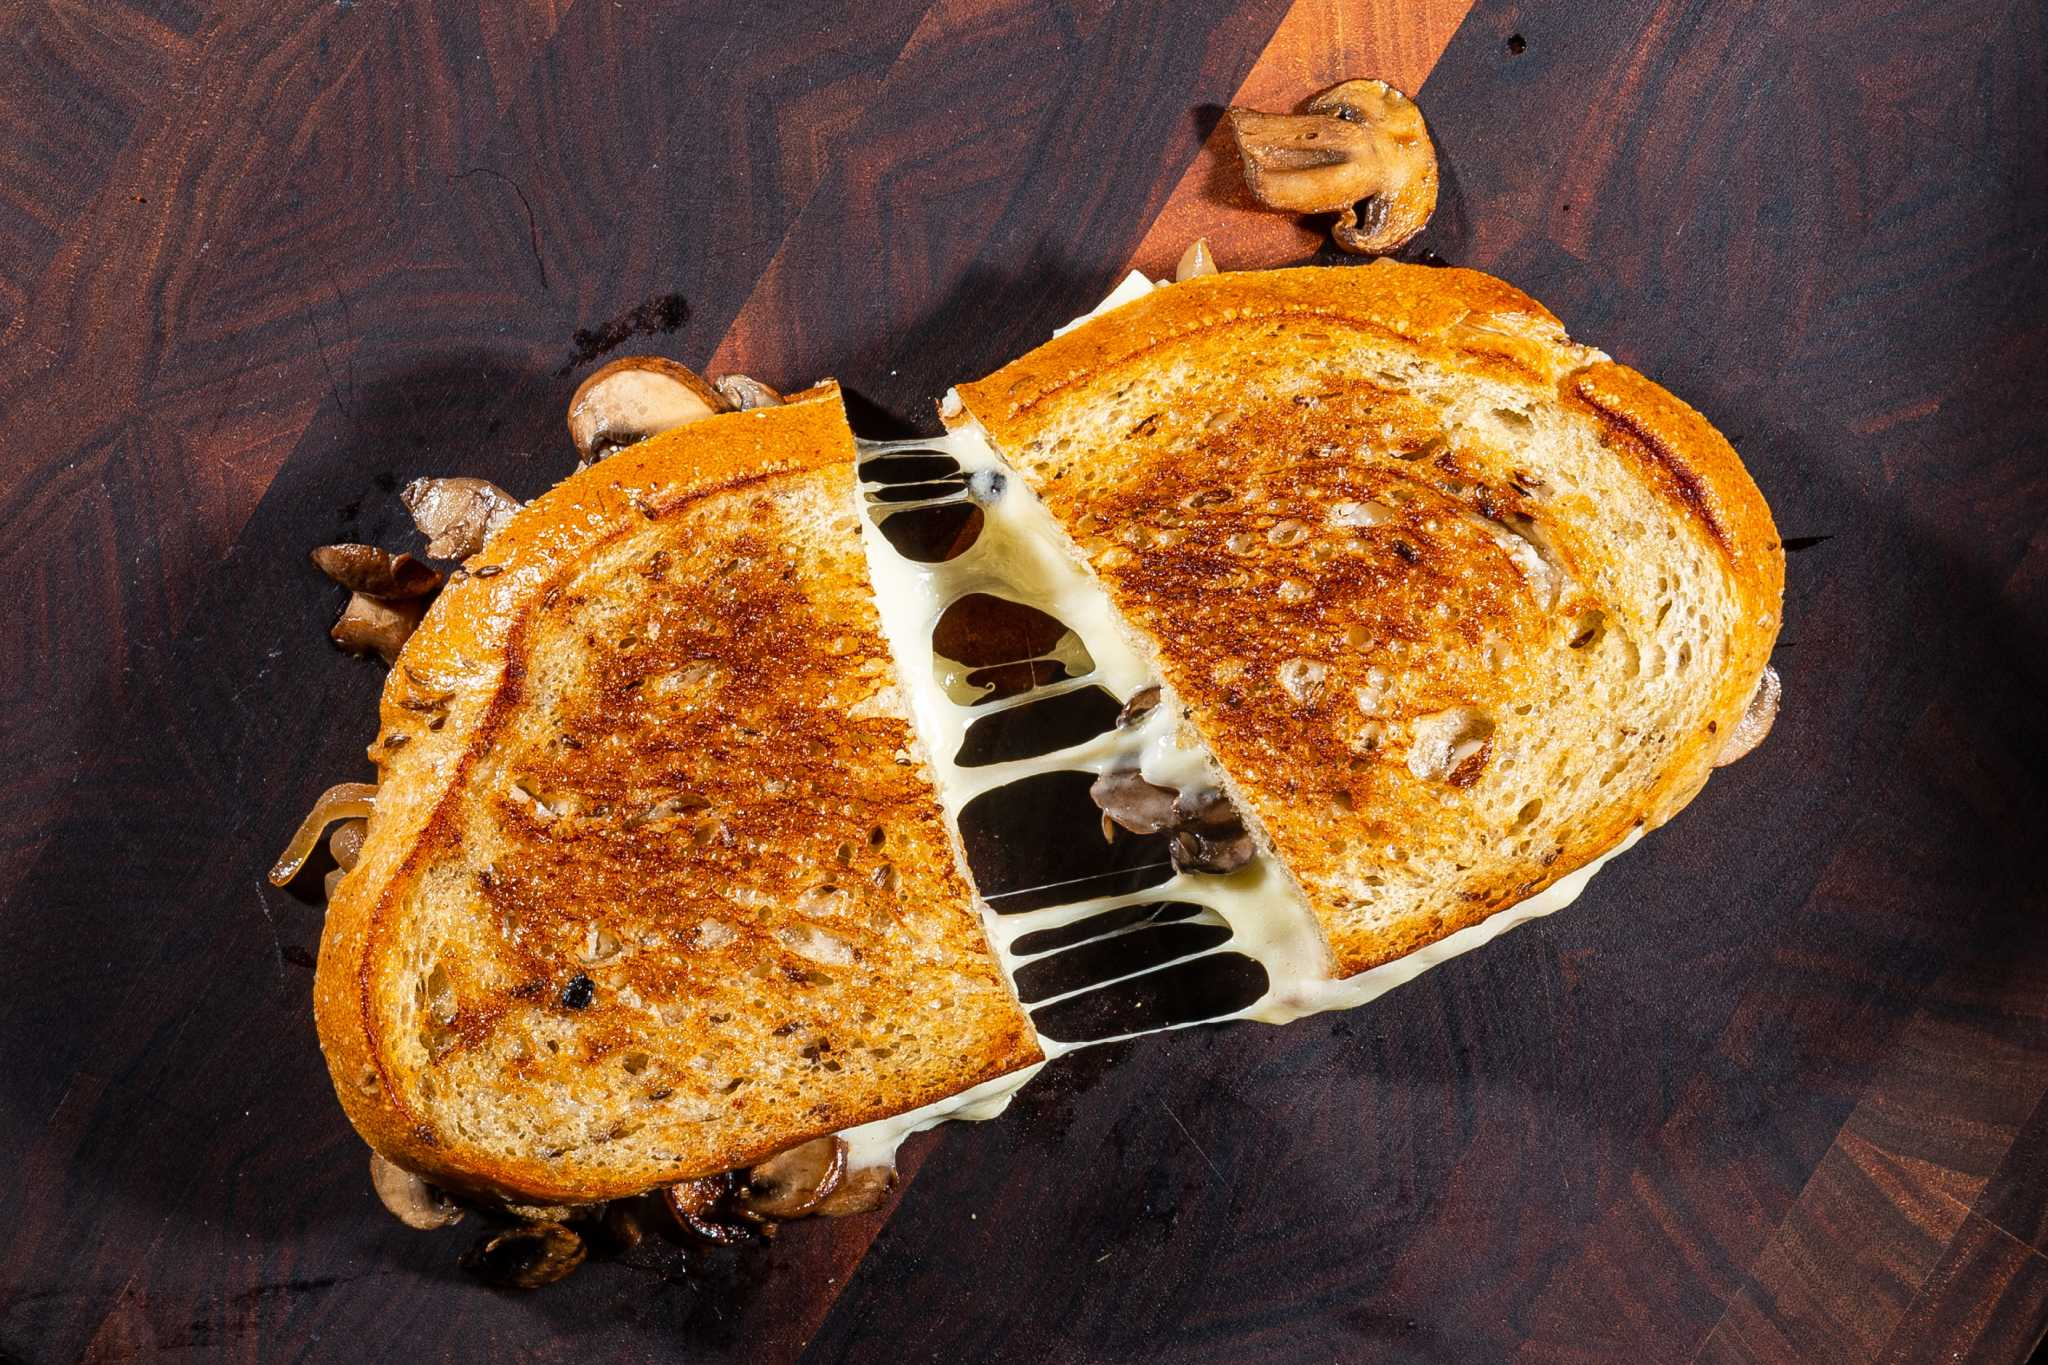 This diner-style 'patty' melt is full of caramelized onions, mushrooms and cheese